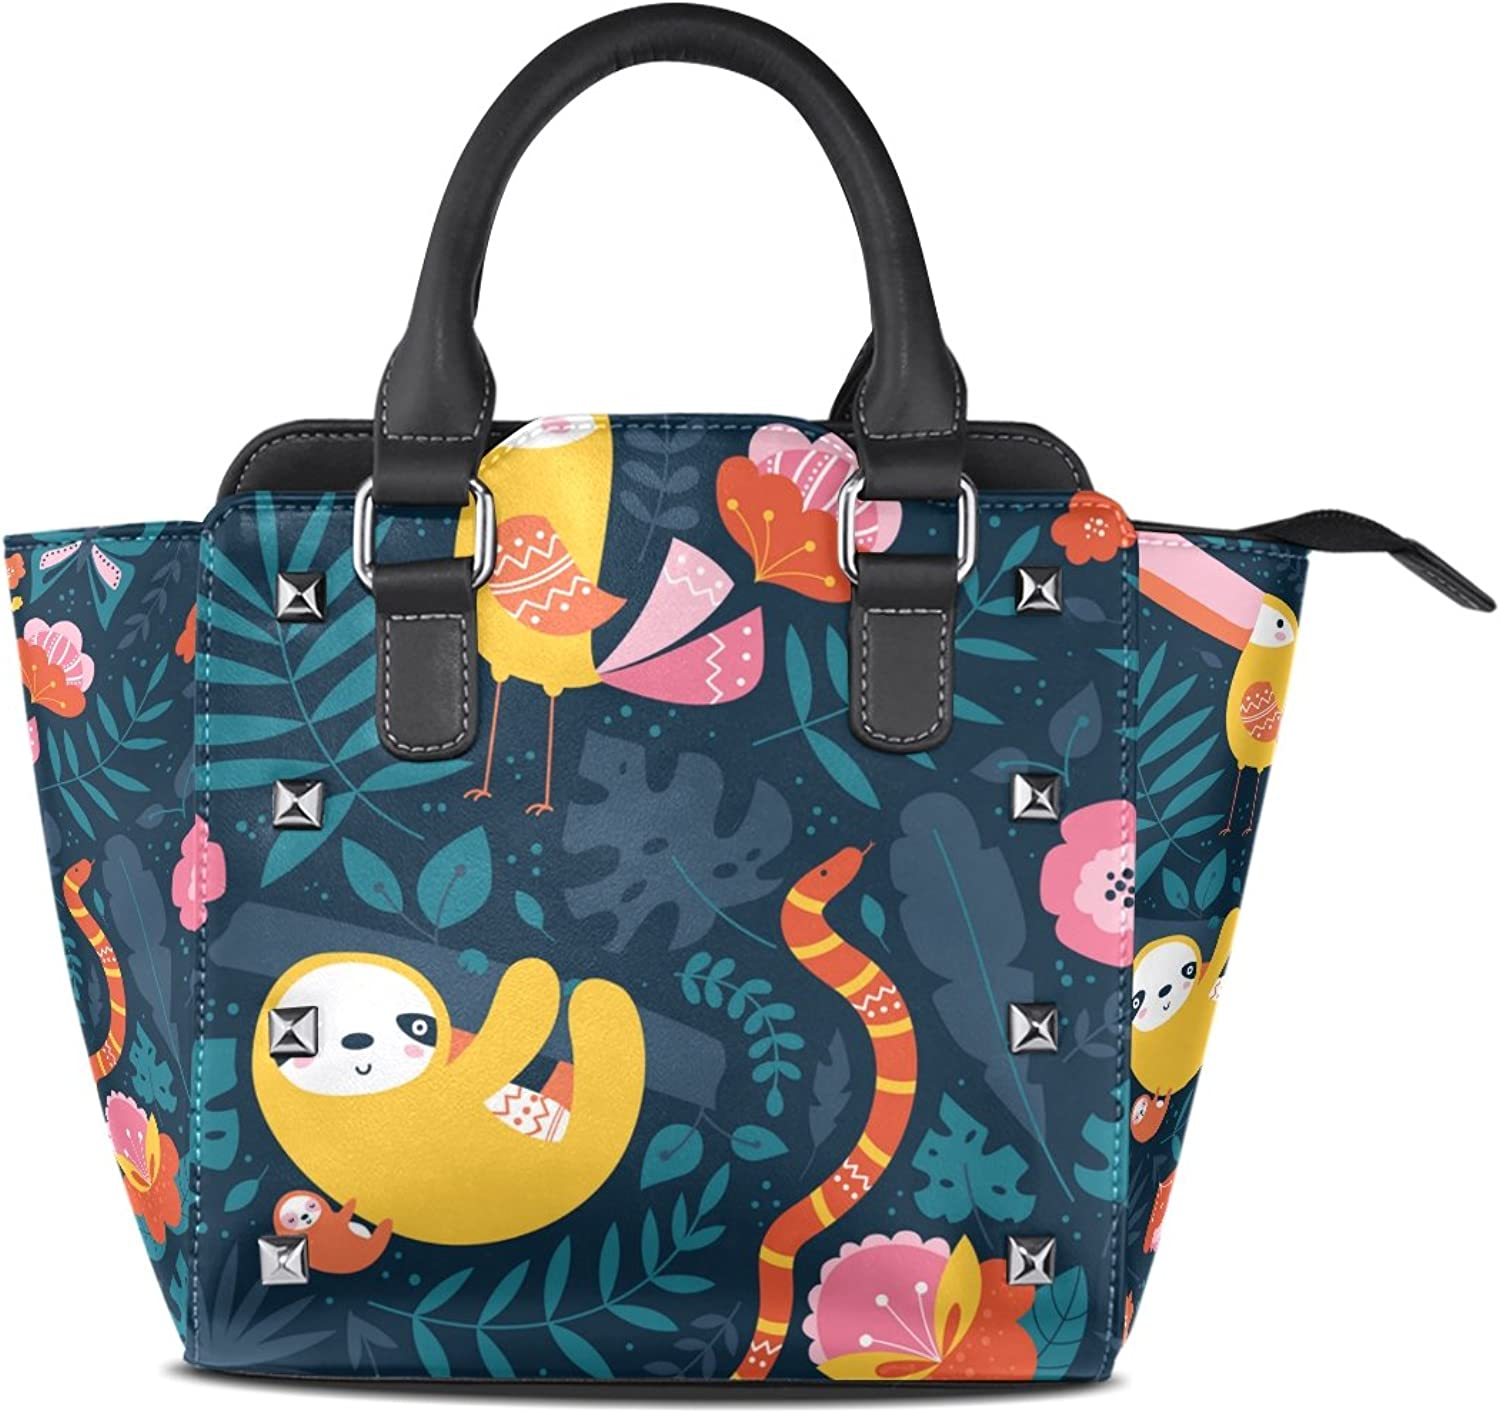 My Little Nest Women's Top Handle Satchel Handbag Tropical Cute Toucan Sloth Snake Ladies PU Leather Shoulder Bag Crossbody Bag